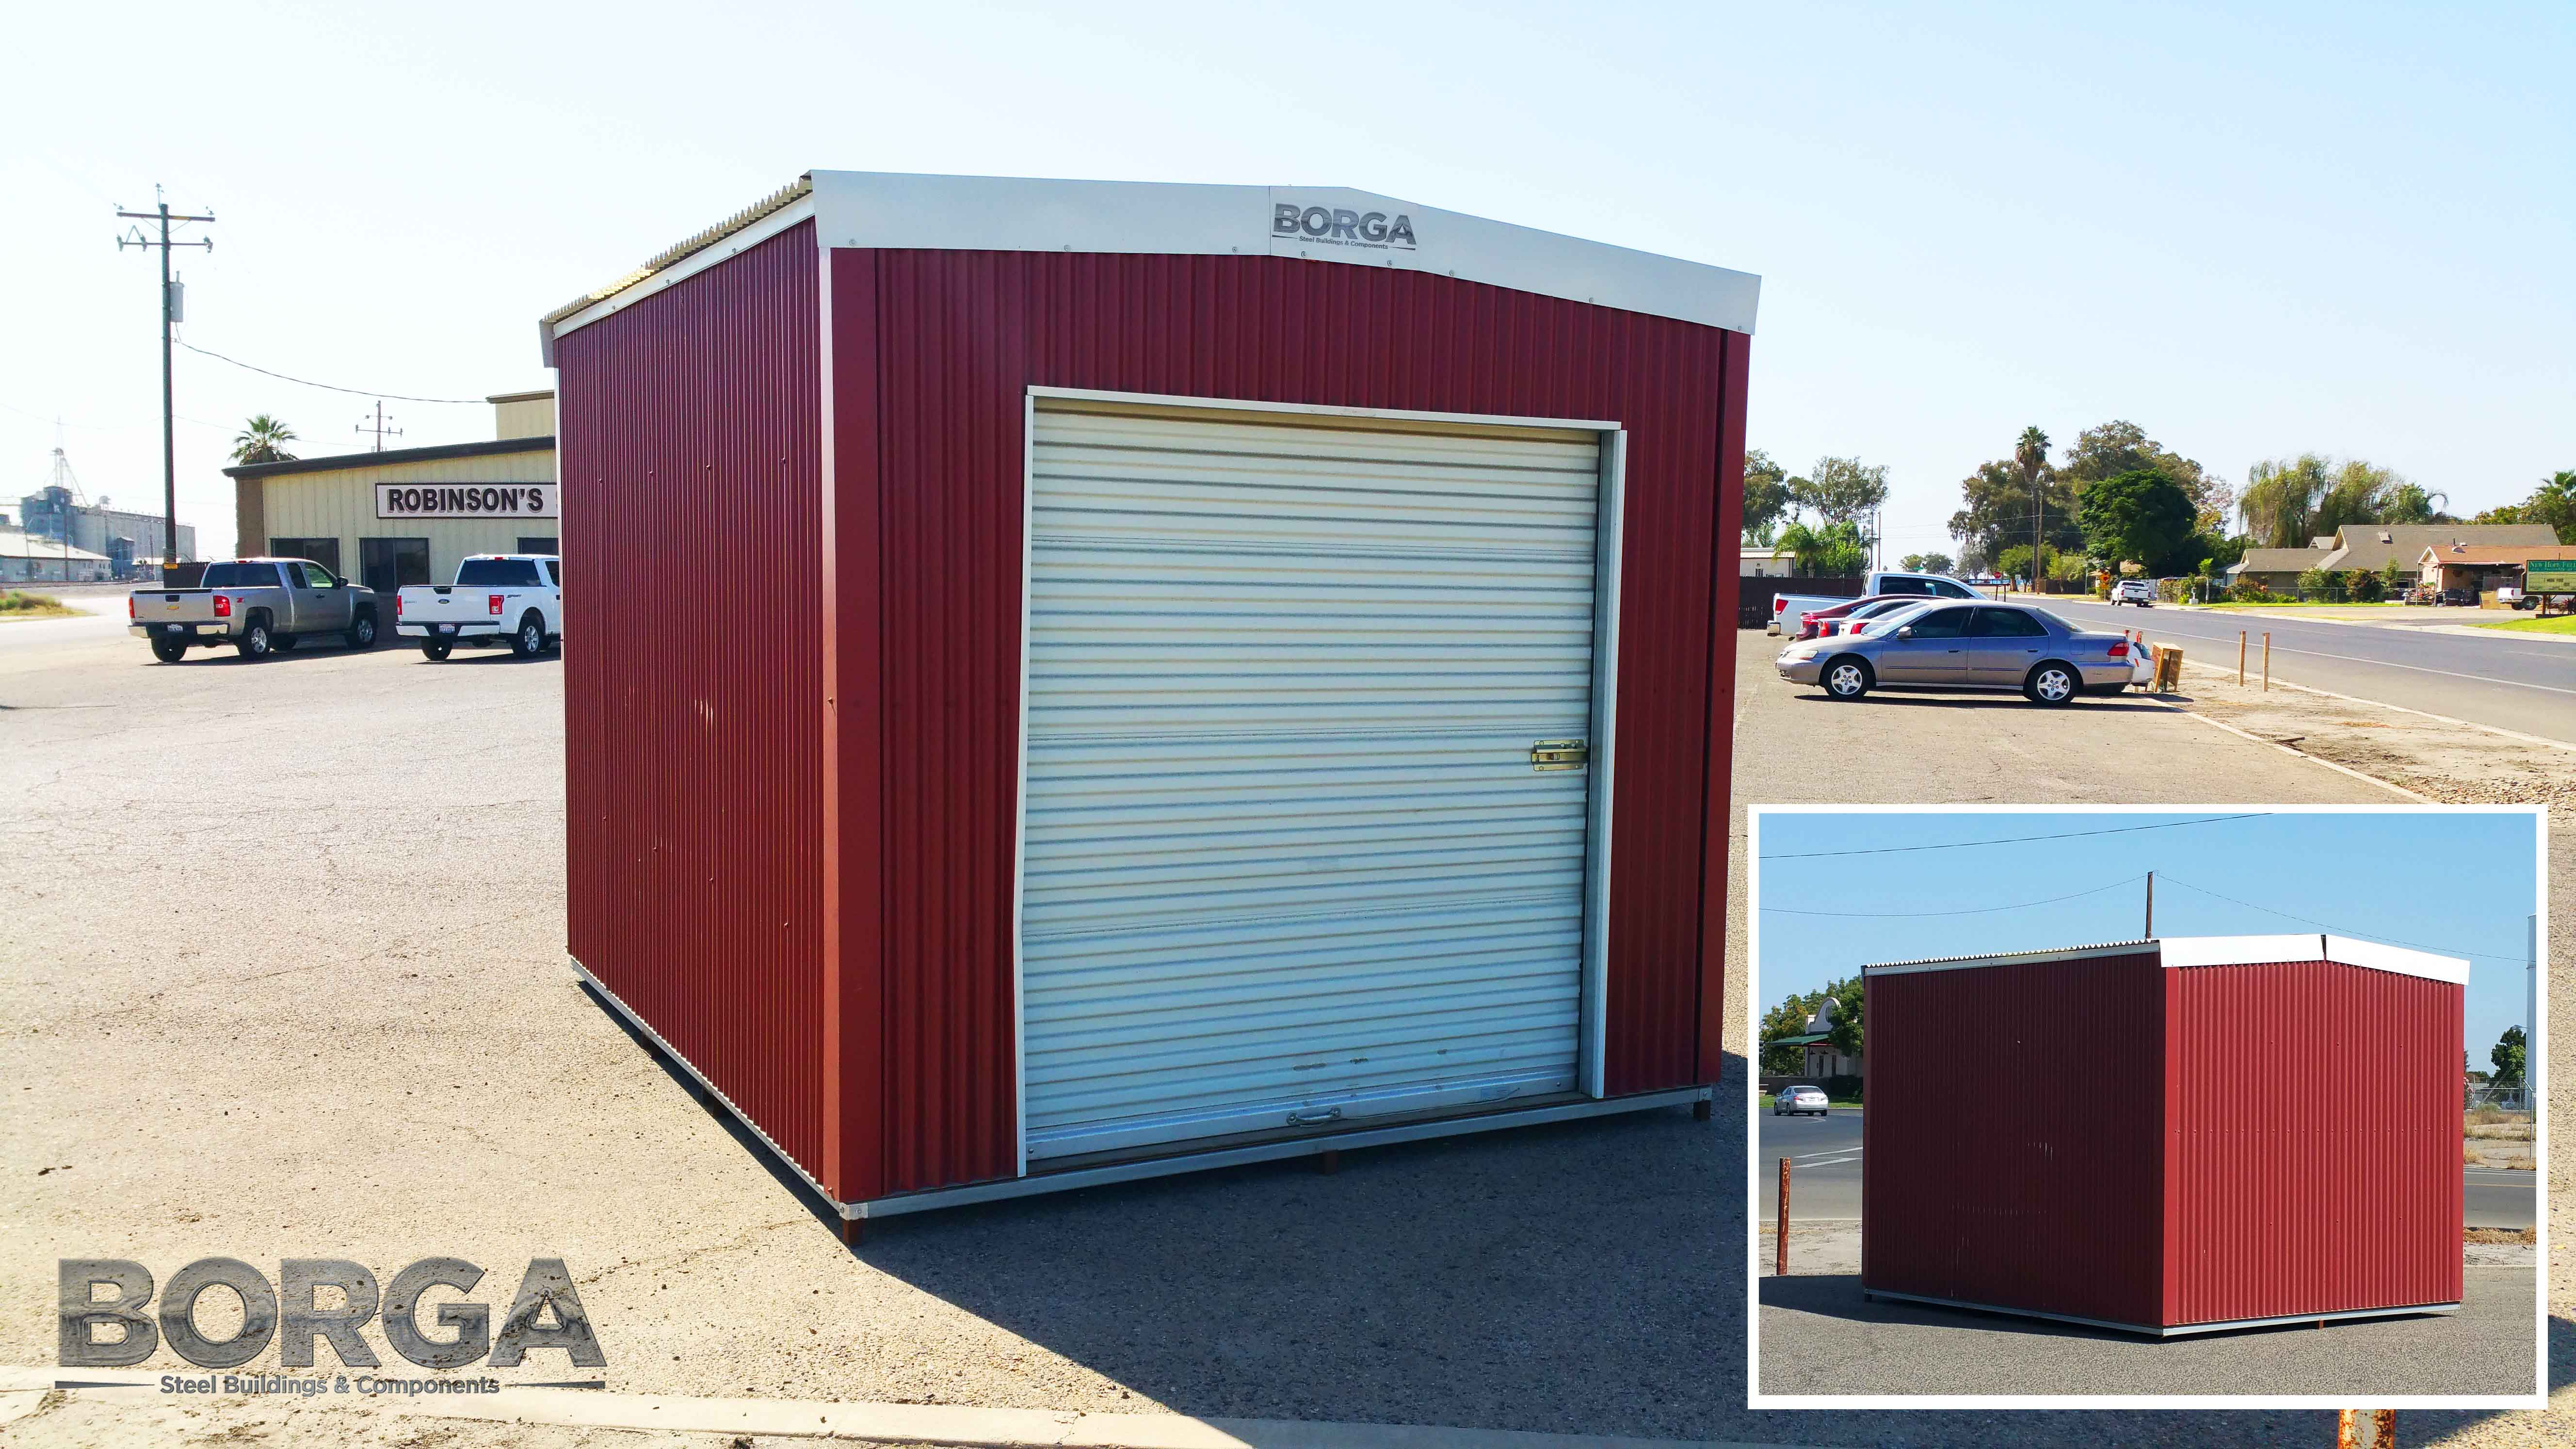 Borga shed kits borga borga steel buildings components fresno ca california shed kit fowler red white diy do it yourself solutioingenieria Images